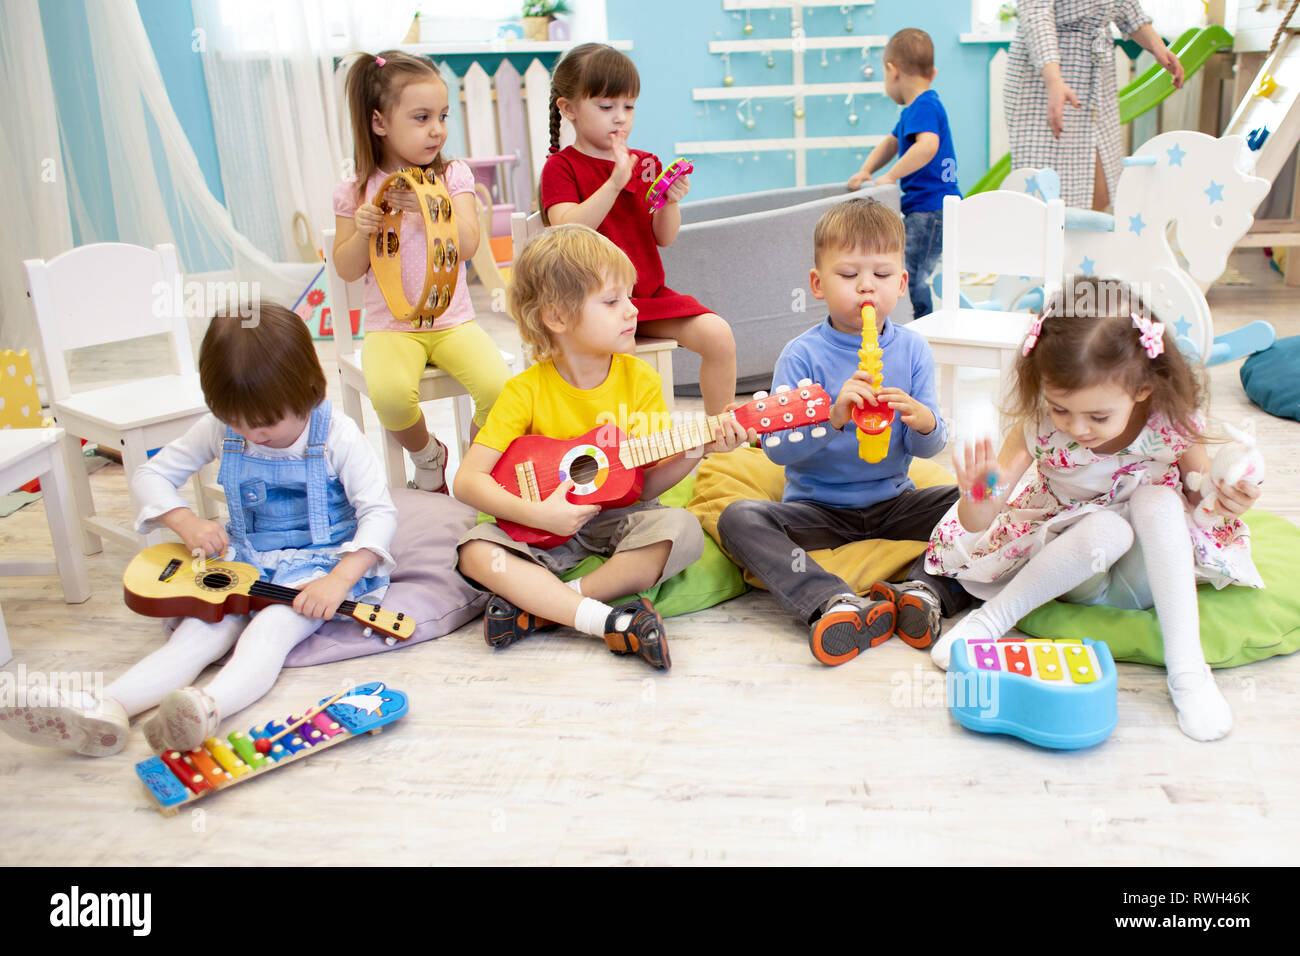 Kids Learning Musical Instruments On Lesson In